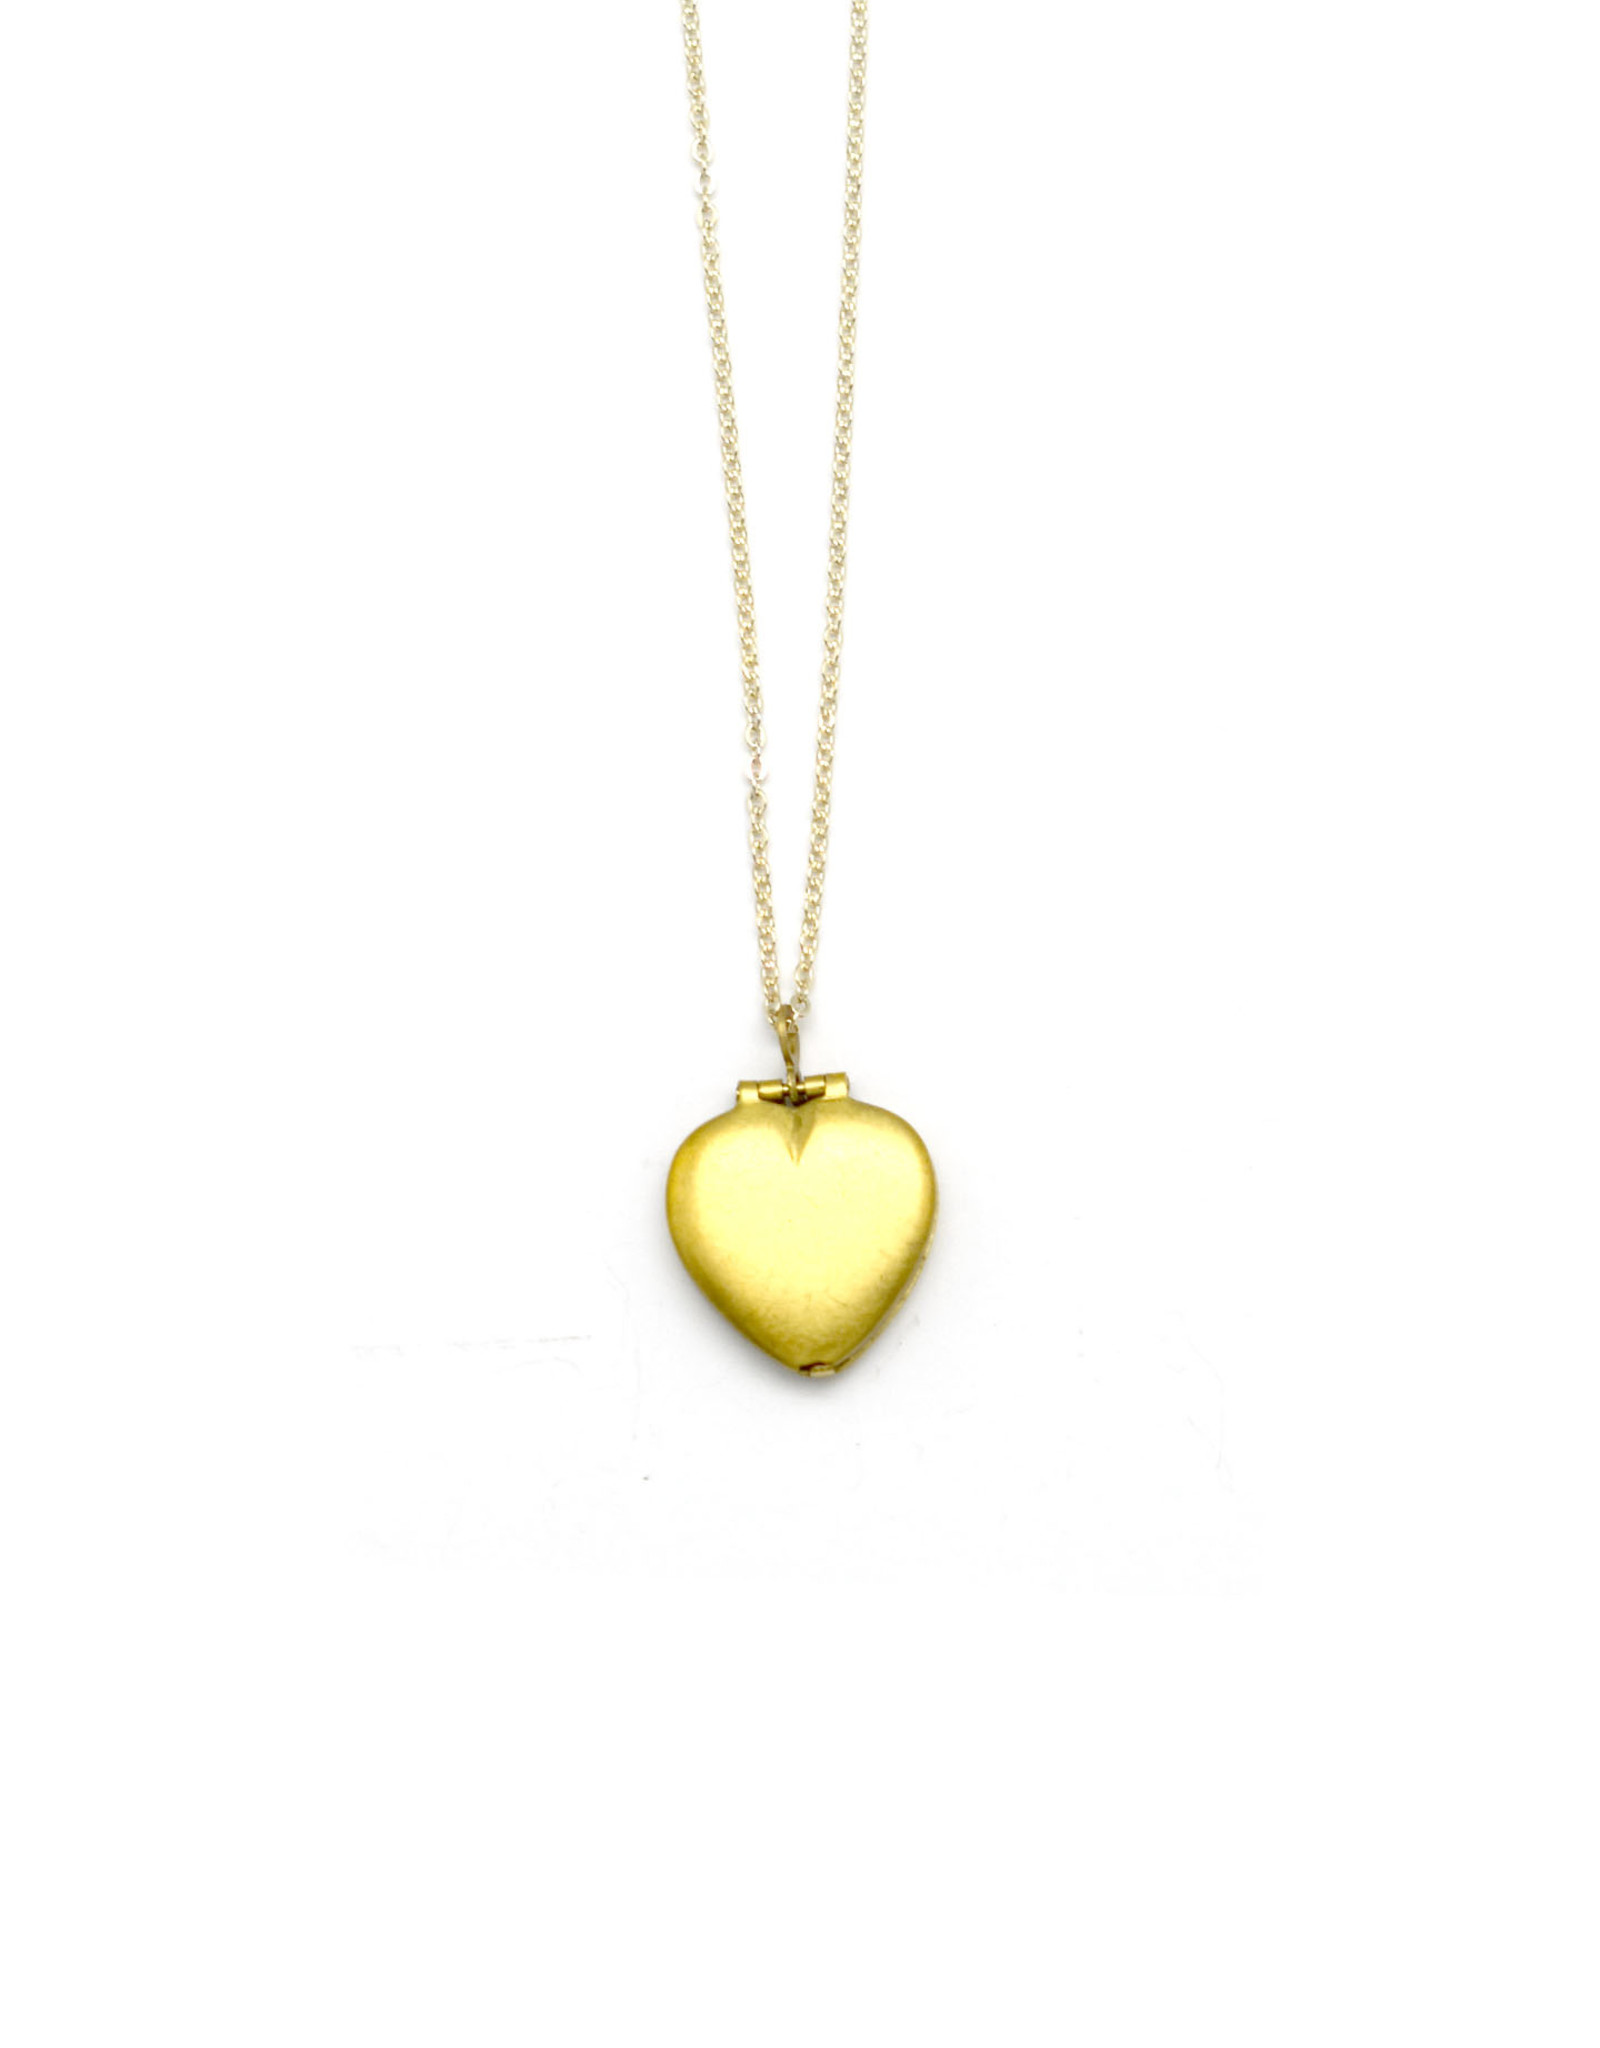 Vintage Heart Locket Necklace